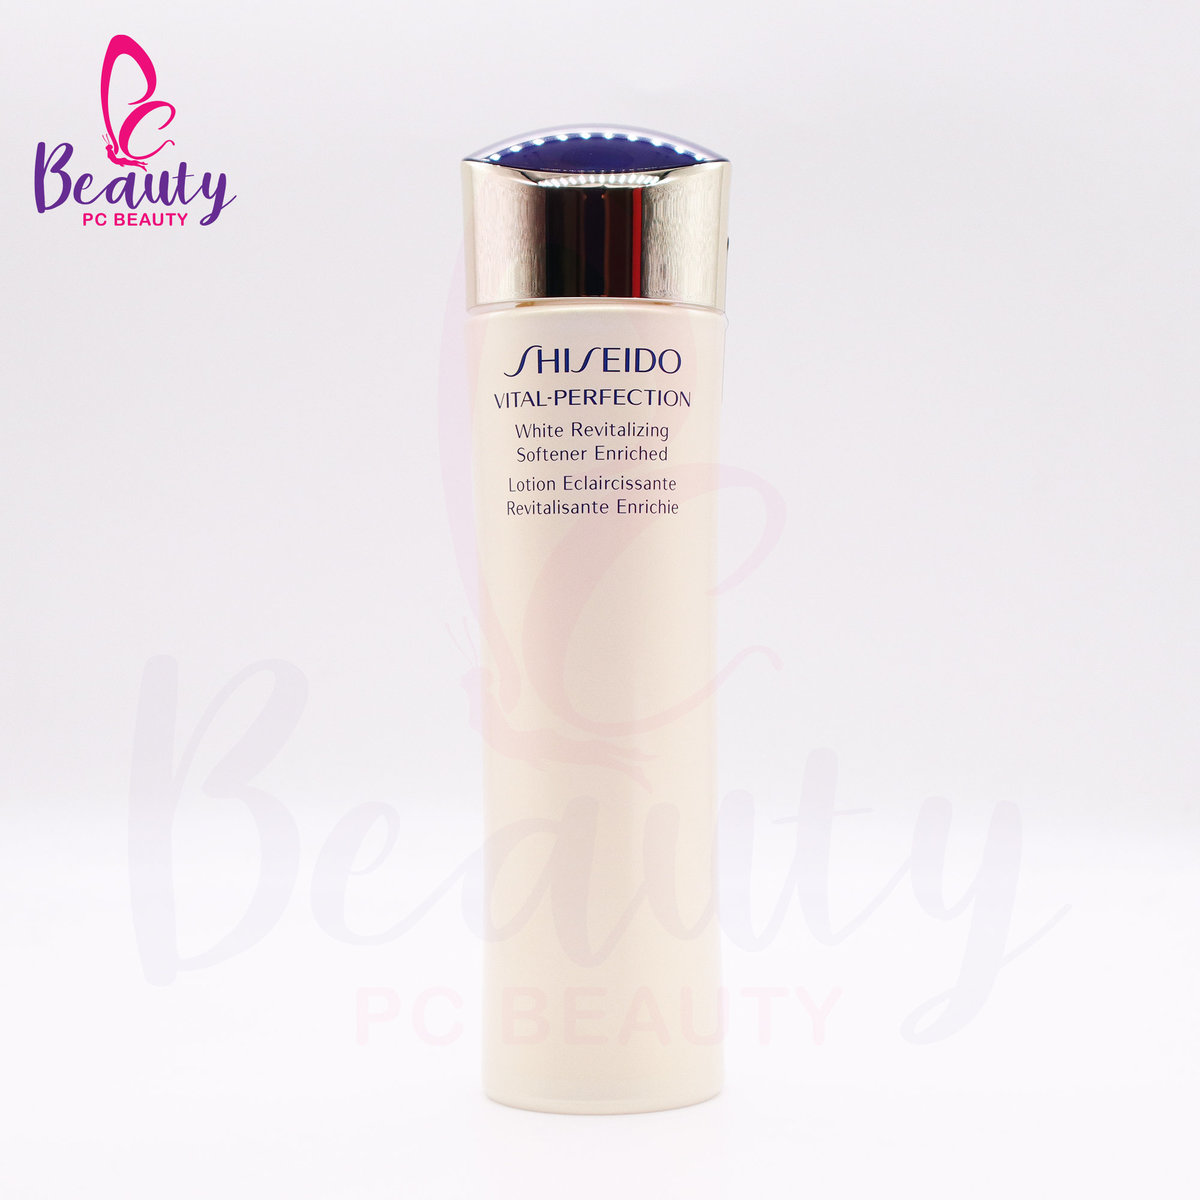 SHISEIDO VITAL-PERFECTION WHITE REVITALIZING SOFTENER ENRICHED 150ML [Parallel Import Product]